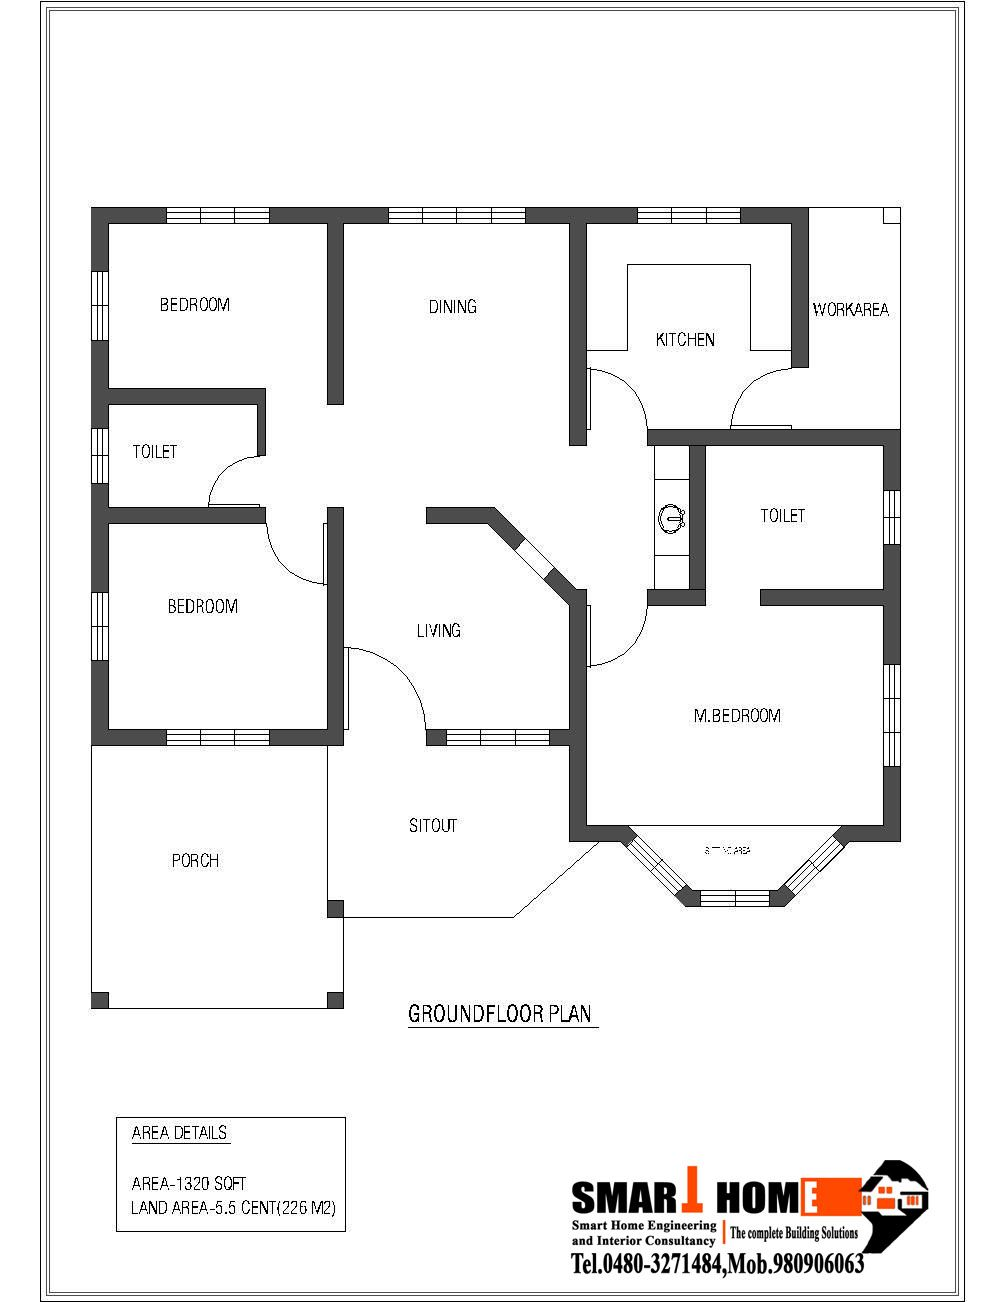 1320 sqft kerala style 3 bedroom house plan from smart for Single level house plans